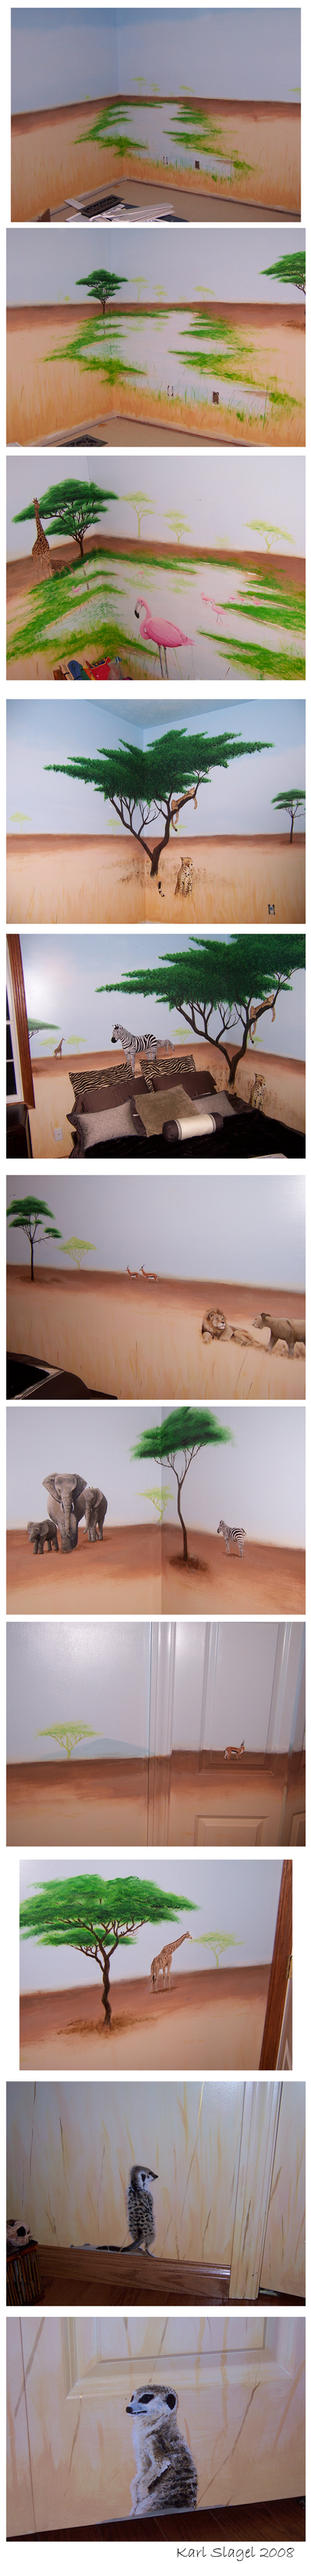 African savanna mural by comic-burn